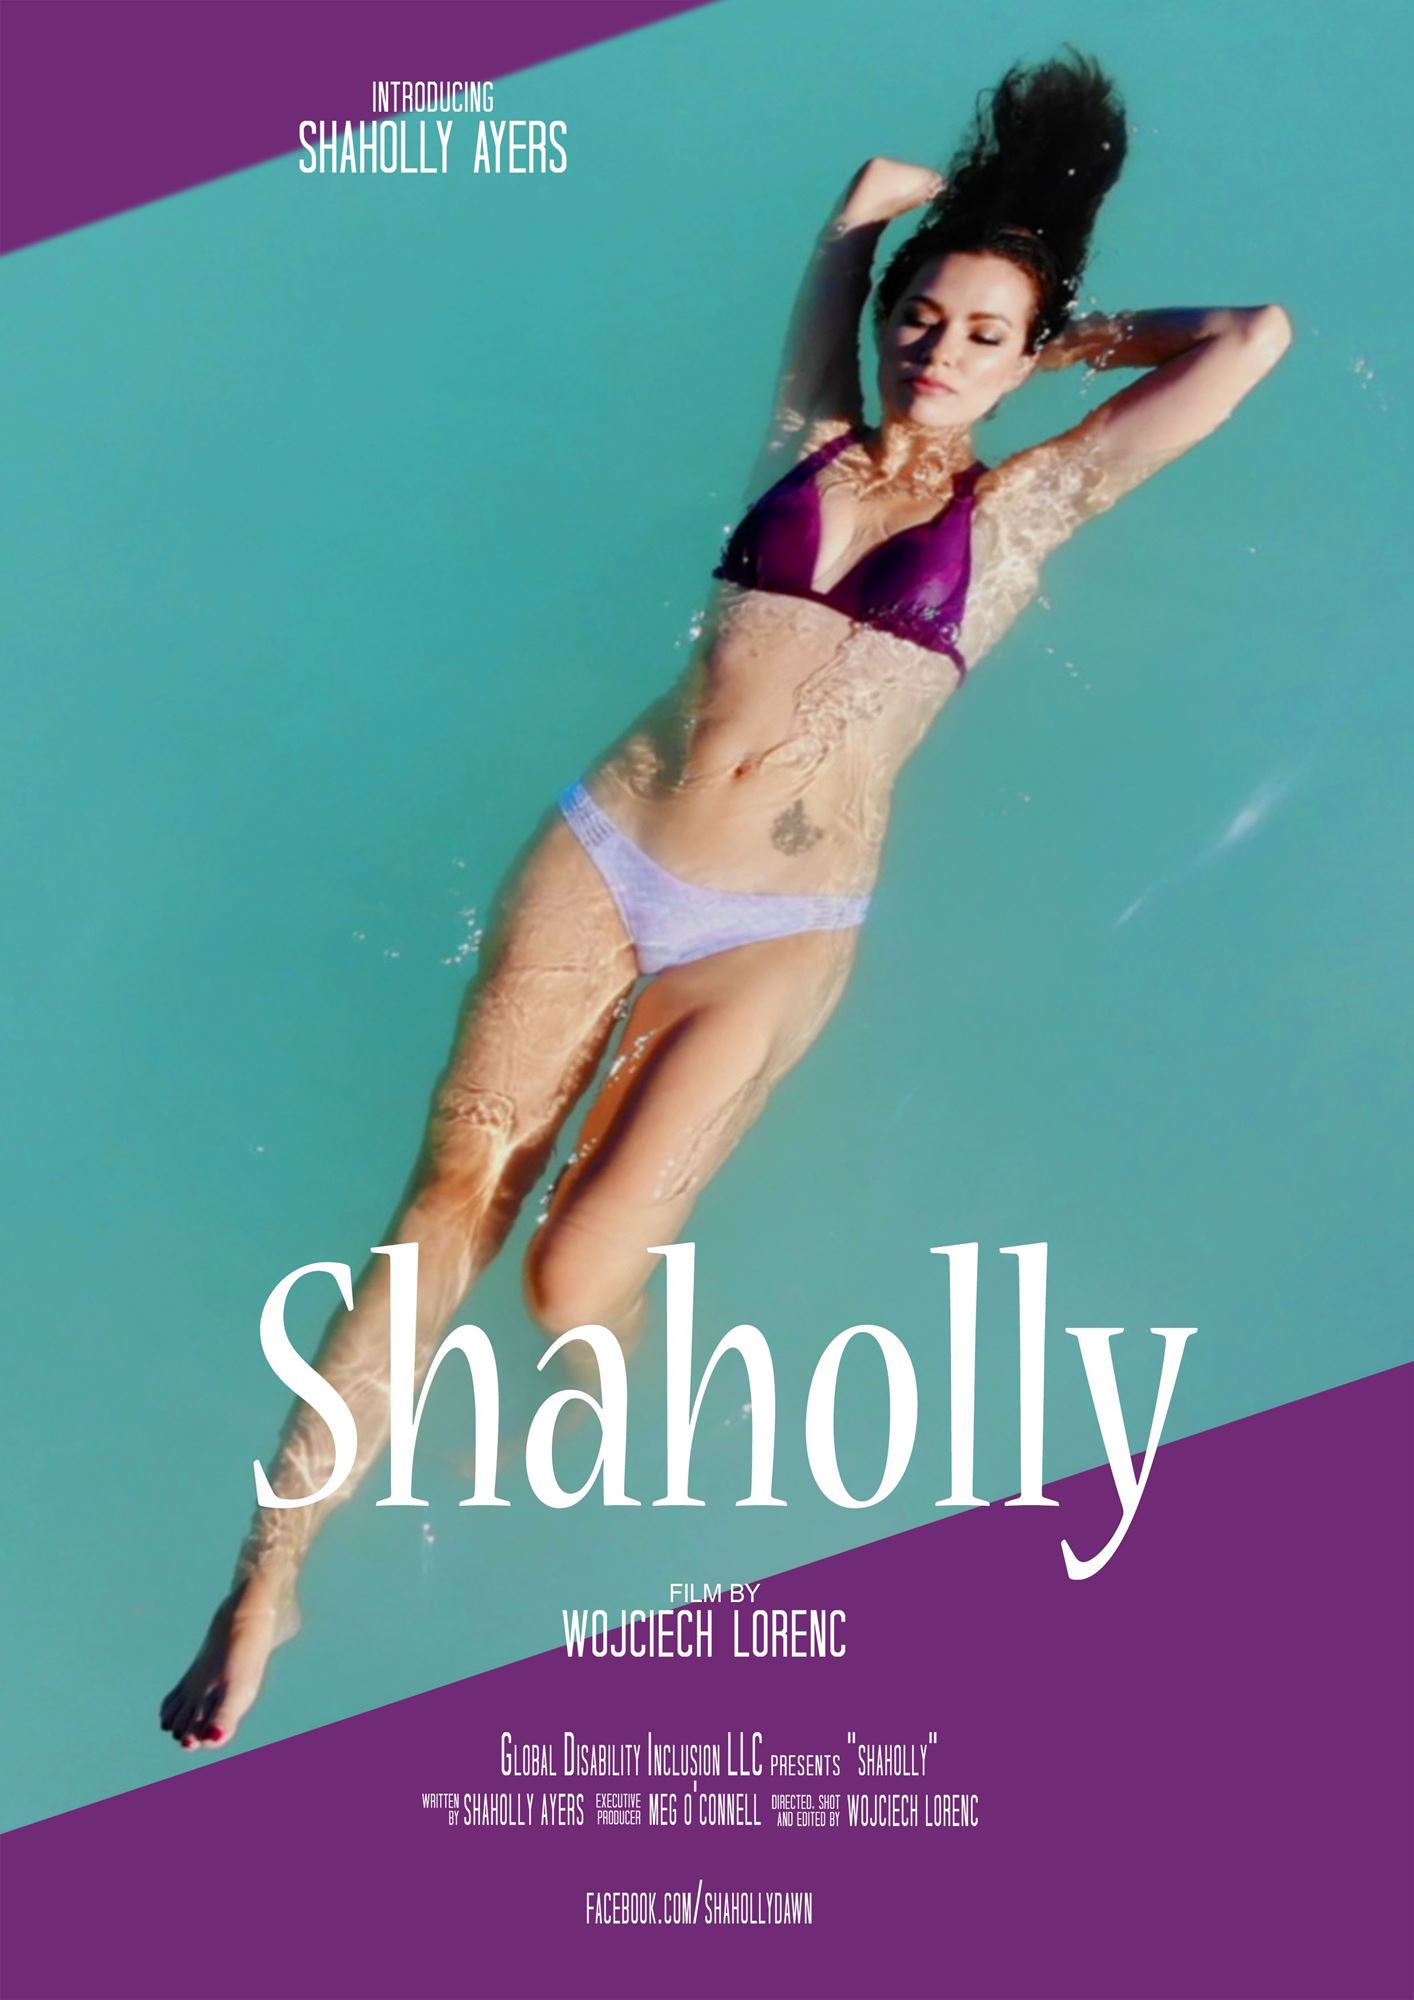 Shaholly